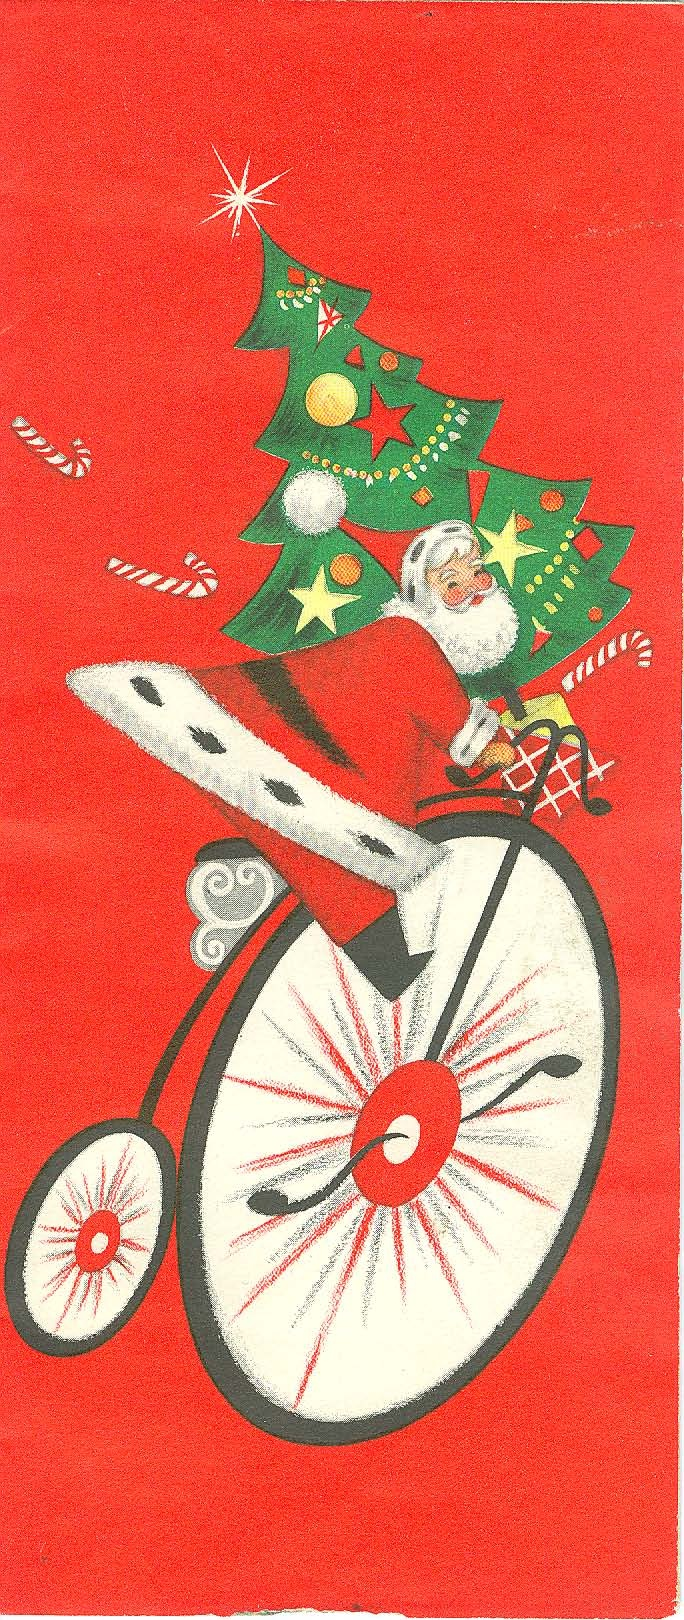 Luv! Vintage Christmas Card ~ Santa on 1 of his Velocipedes!